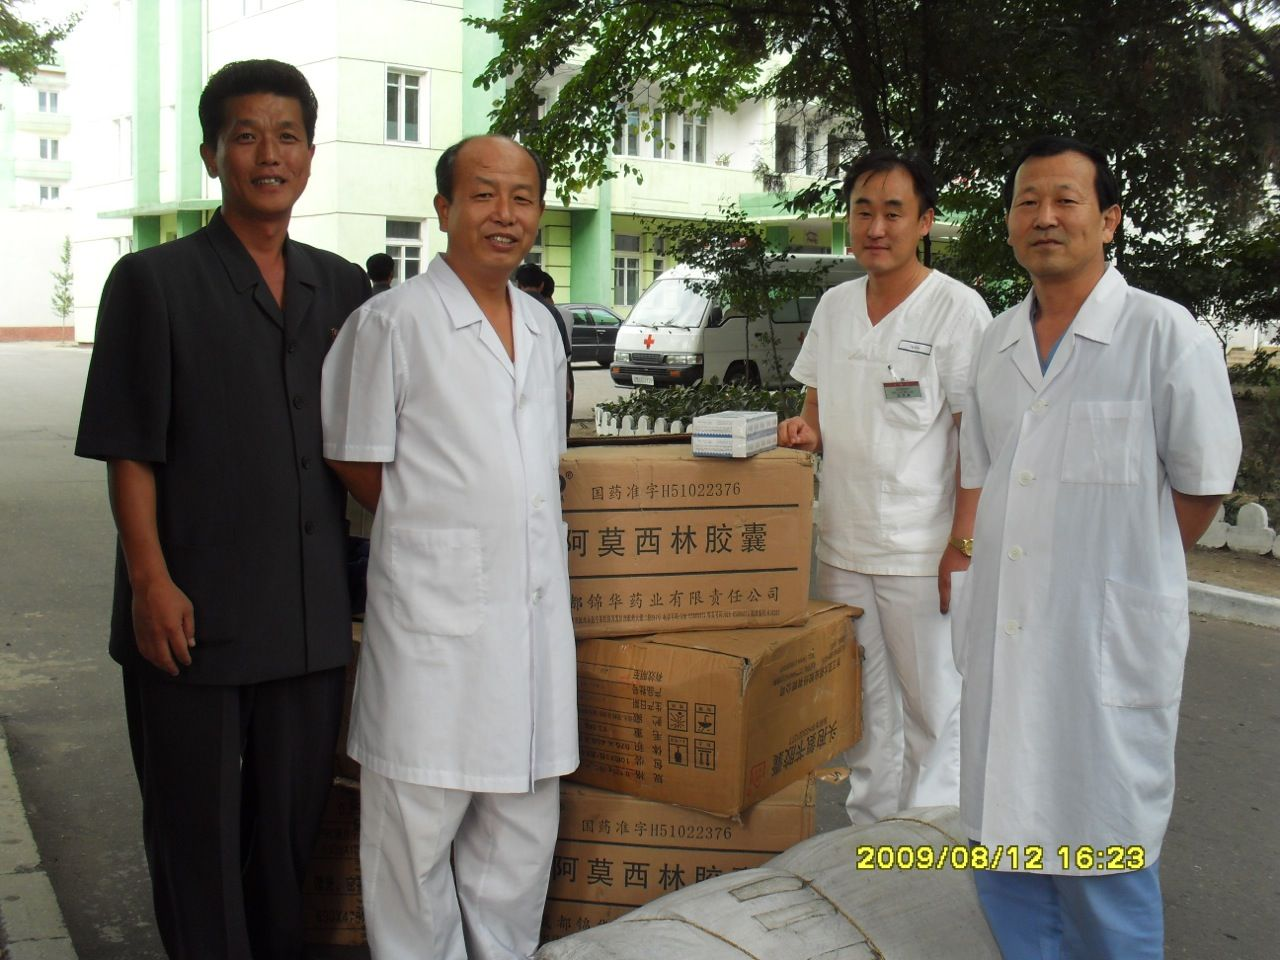 Medicine received and distributed to the needy by our partners in the Korea Red Cross General Hospital, by Dr. Kang Nam Il and Dr. Hwang Chol.